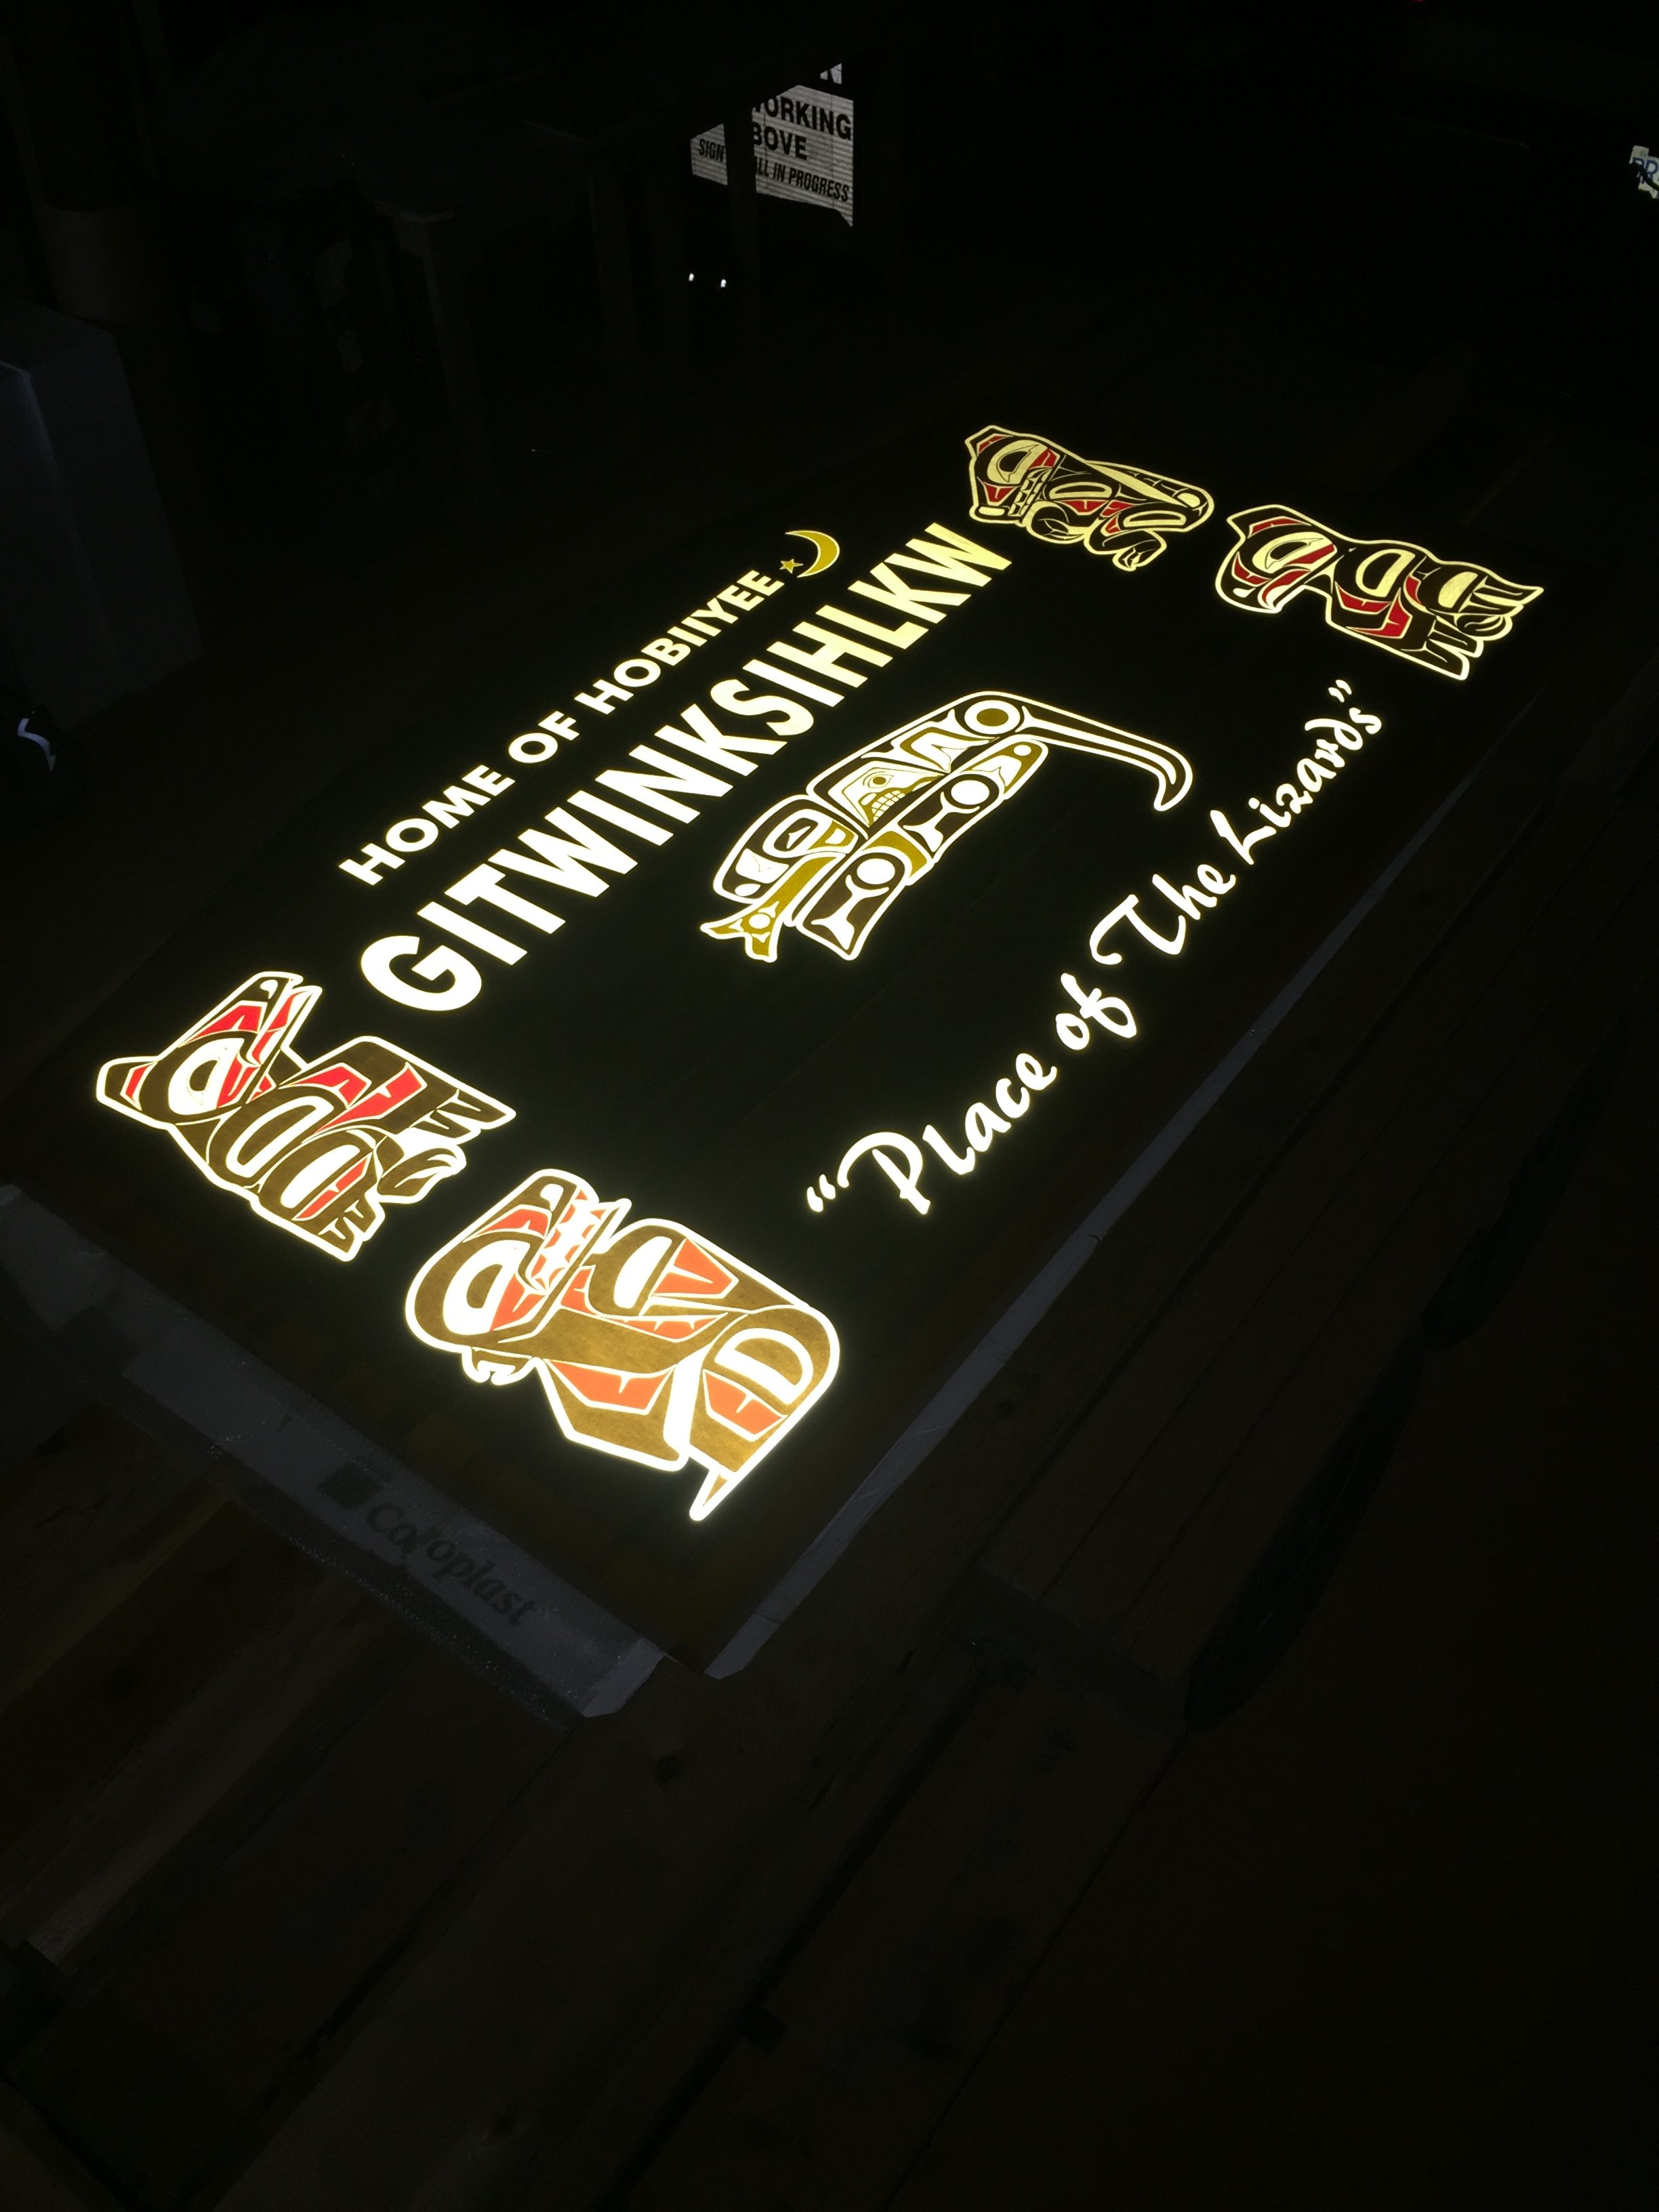 Wood Sandblasted Illuminated Sign